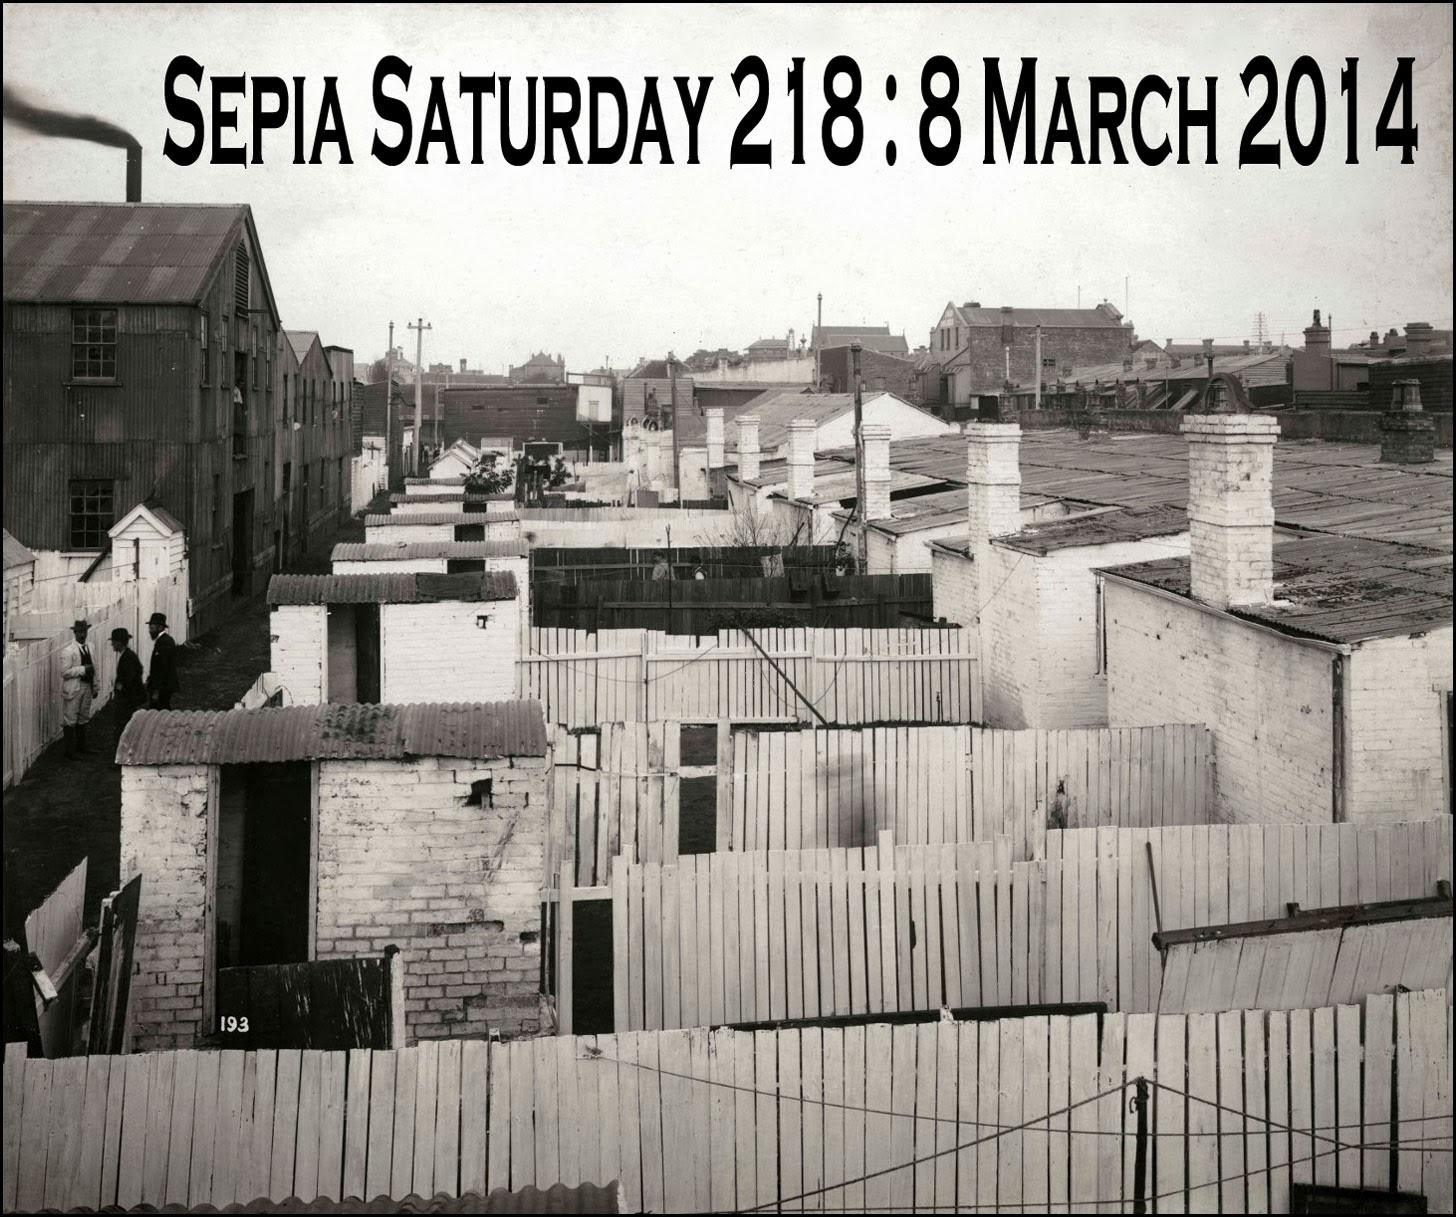 http://sepiasaturday.blogspot.com/2014/03/sepia-saturday-218-8-march-2014.html